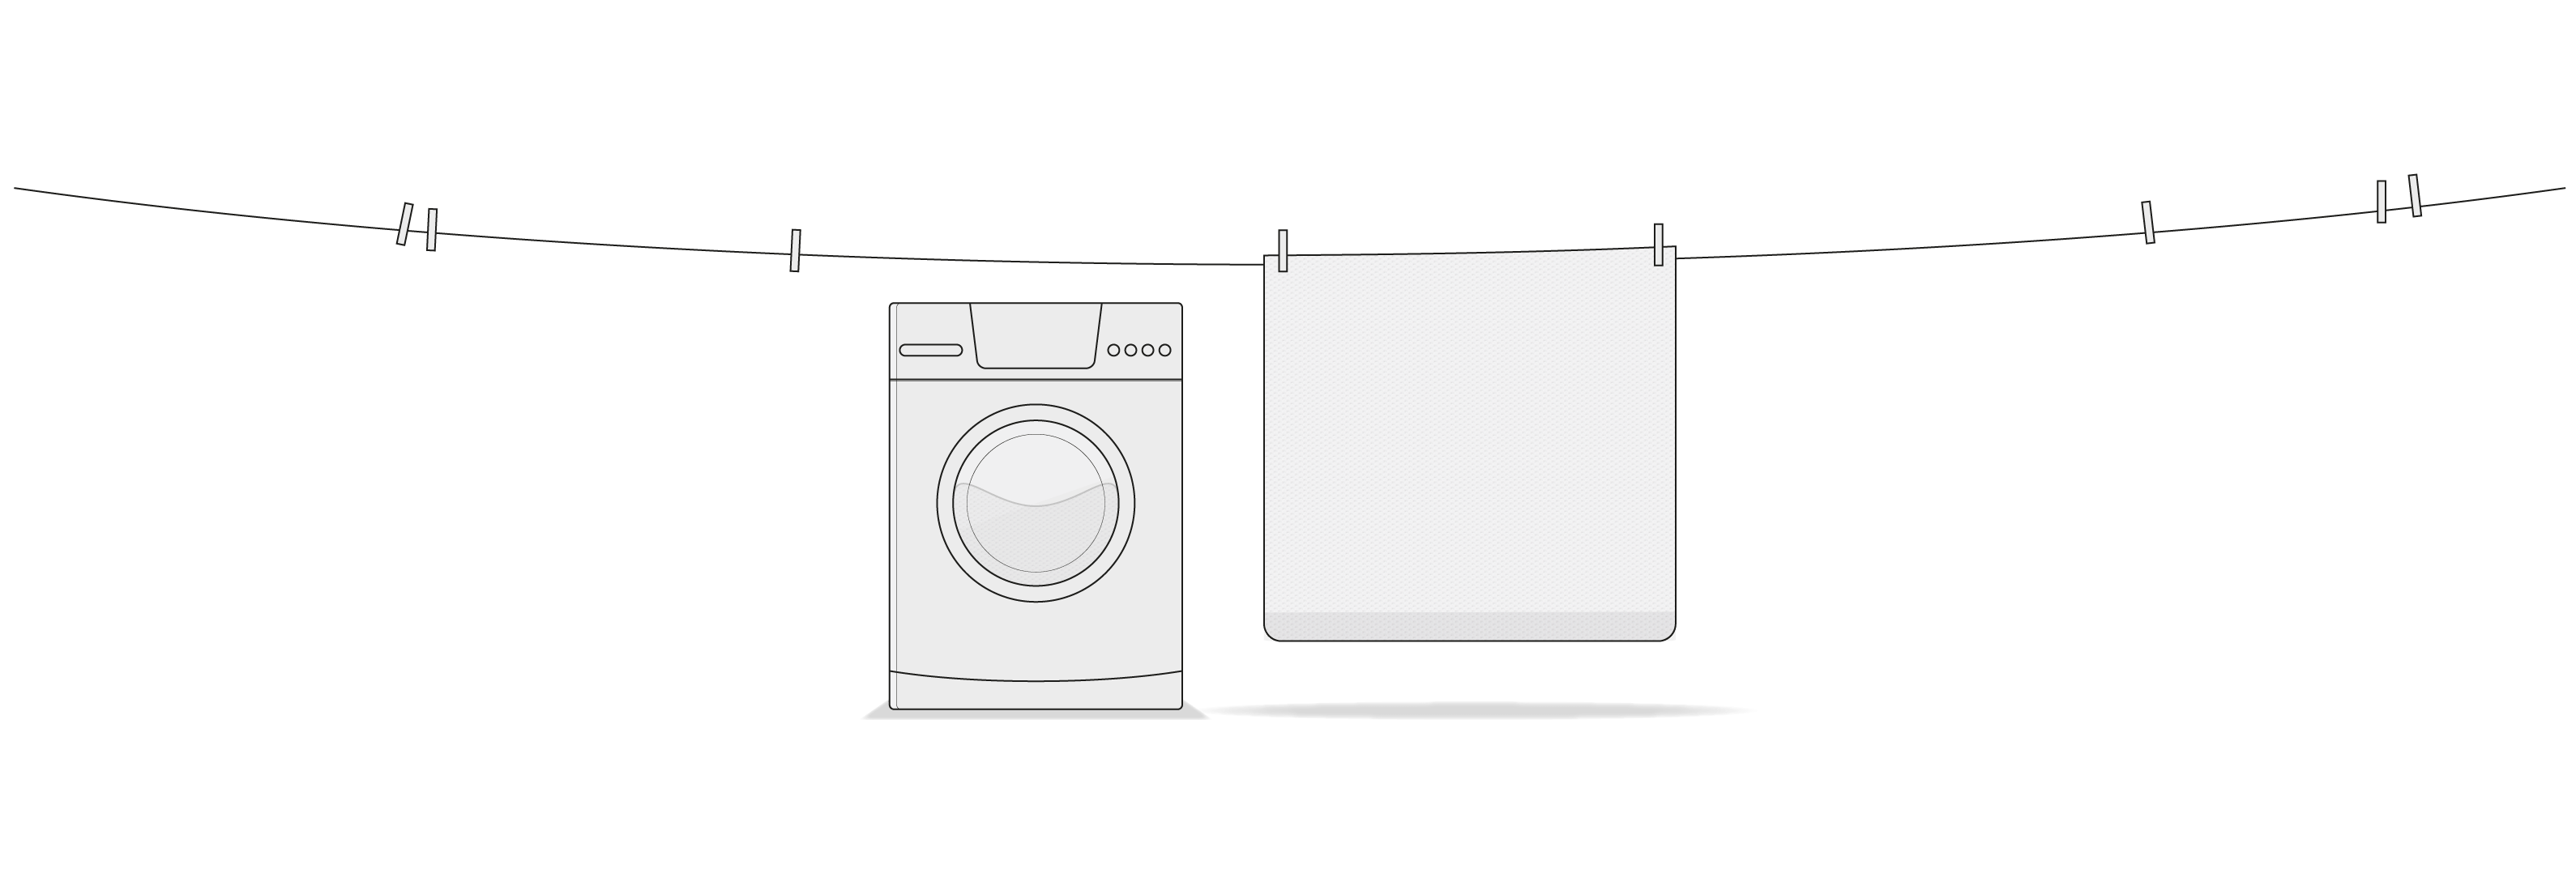 Illustration: A clothesline with a few clothespins, on which the HyBreeze Cover is hanging. Underneath is a washing machine.